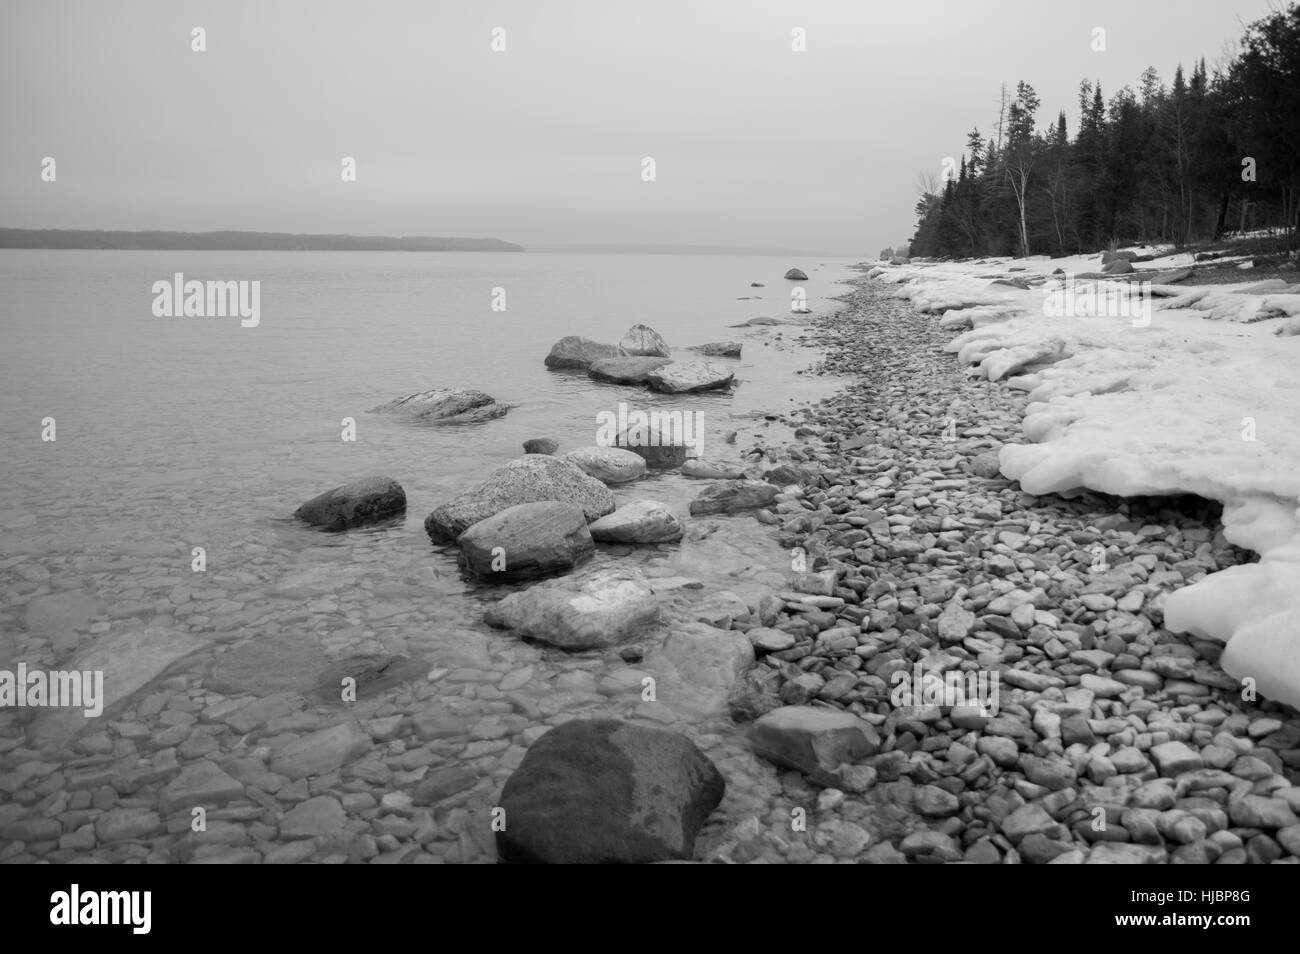 A geometric looking bw image of conifers, snow, rocks and clear lake water and an island on the horizon. - Stock Image